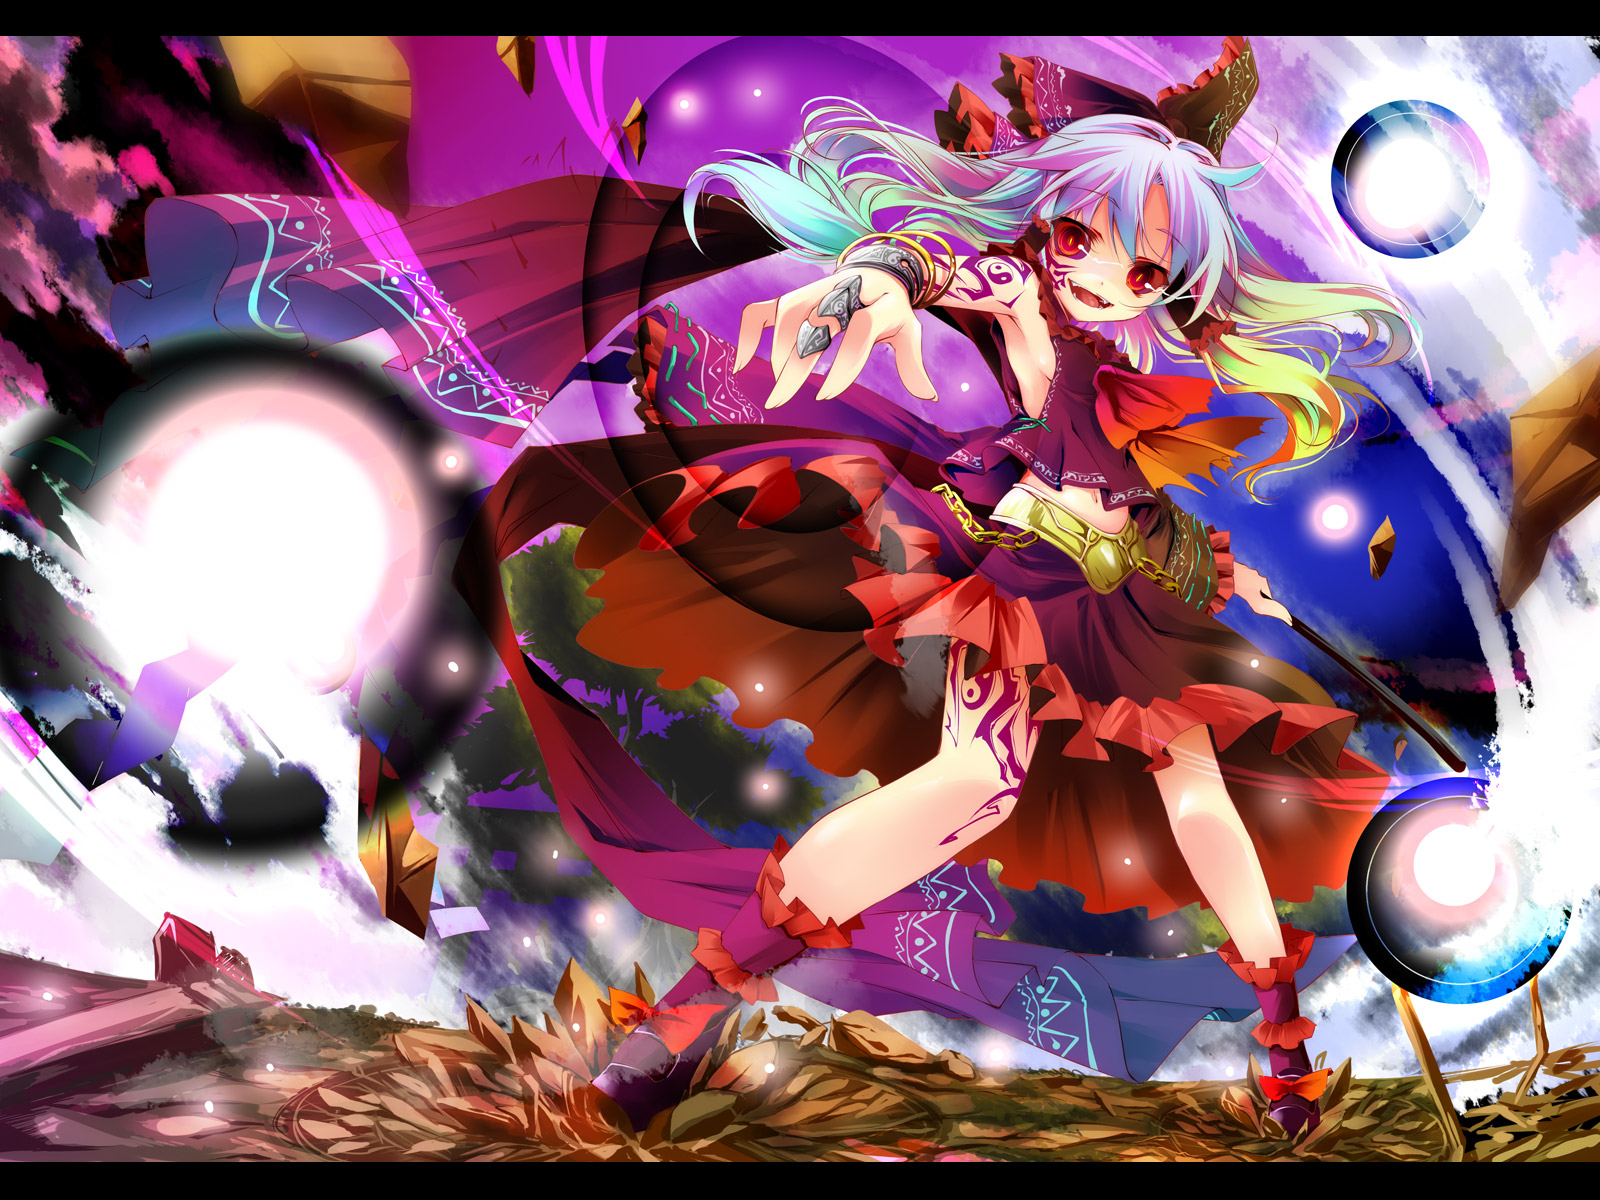 Touhou Project - Страница 15 976f3862185d12d32b221bf82f819995